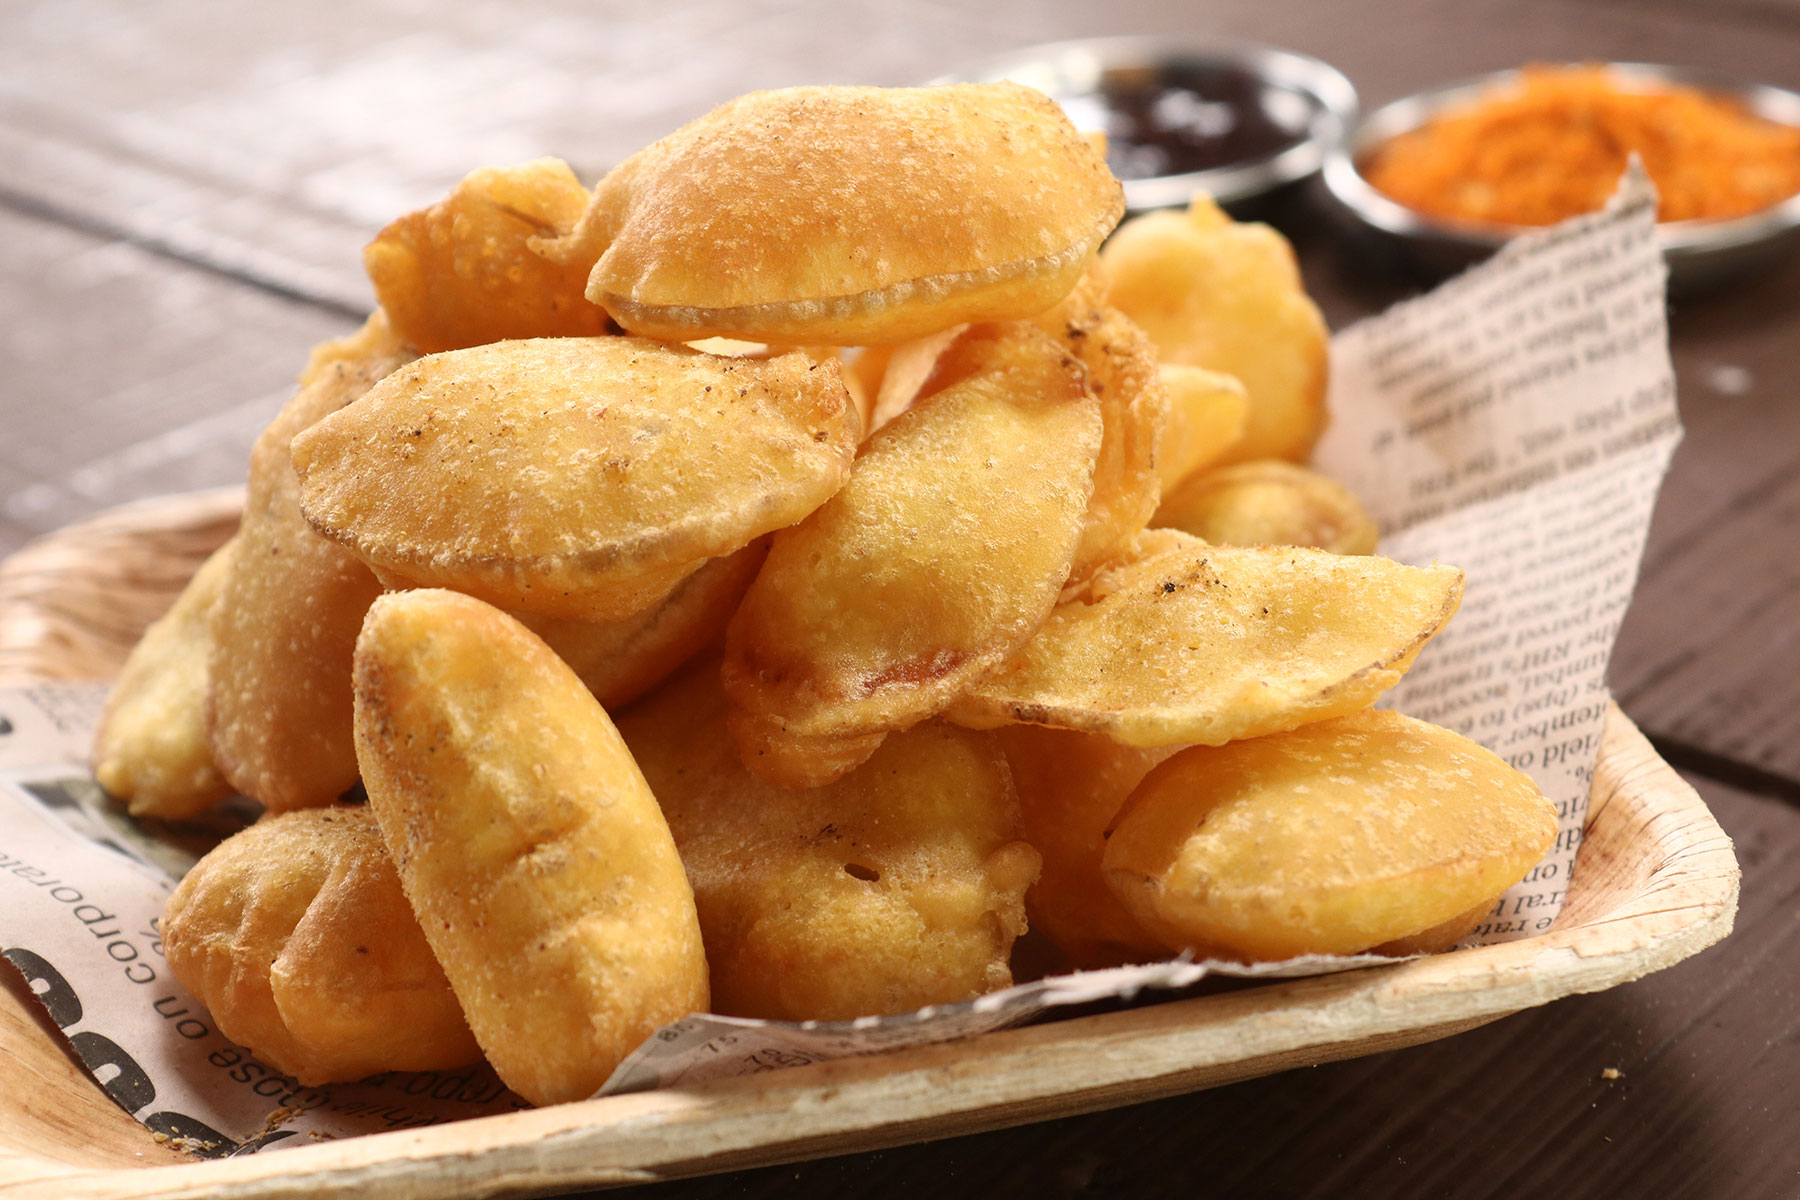 Tips and tricks for deep frying